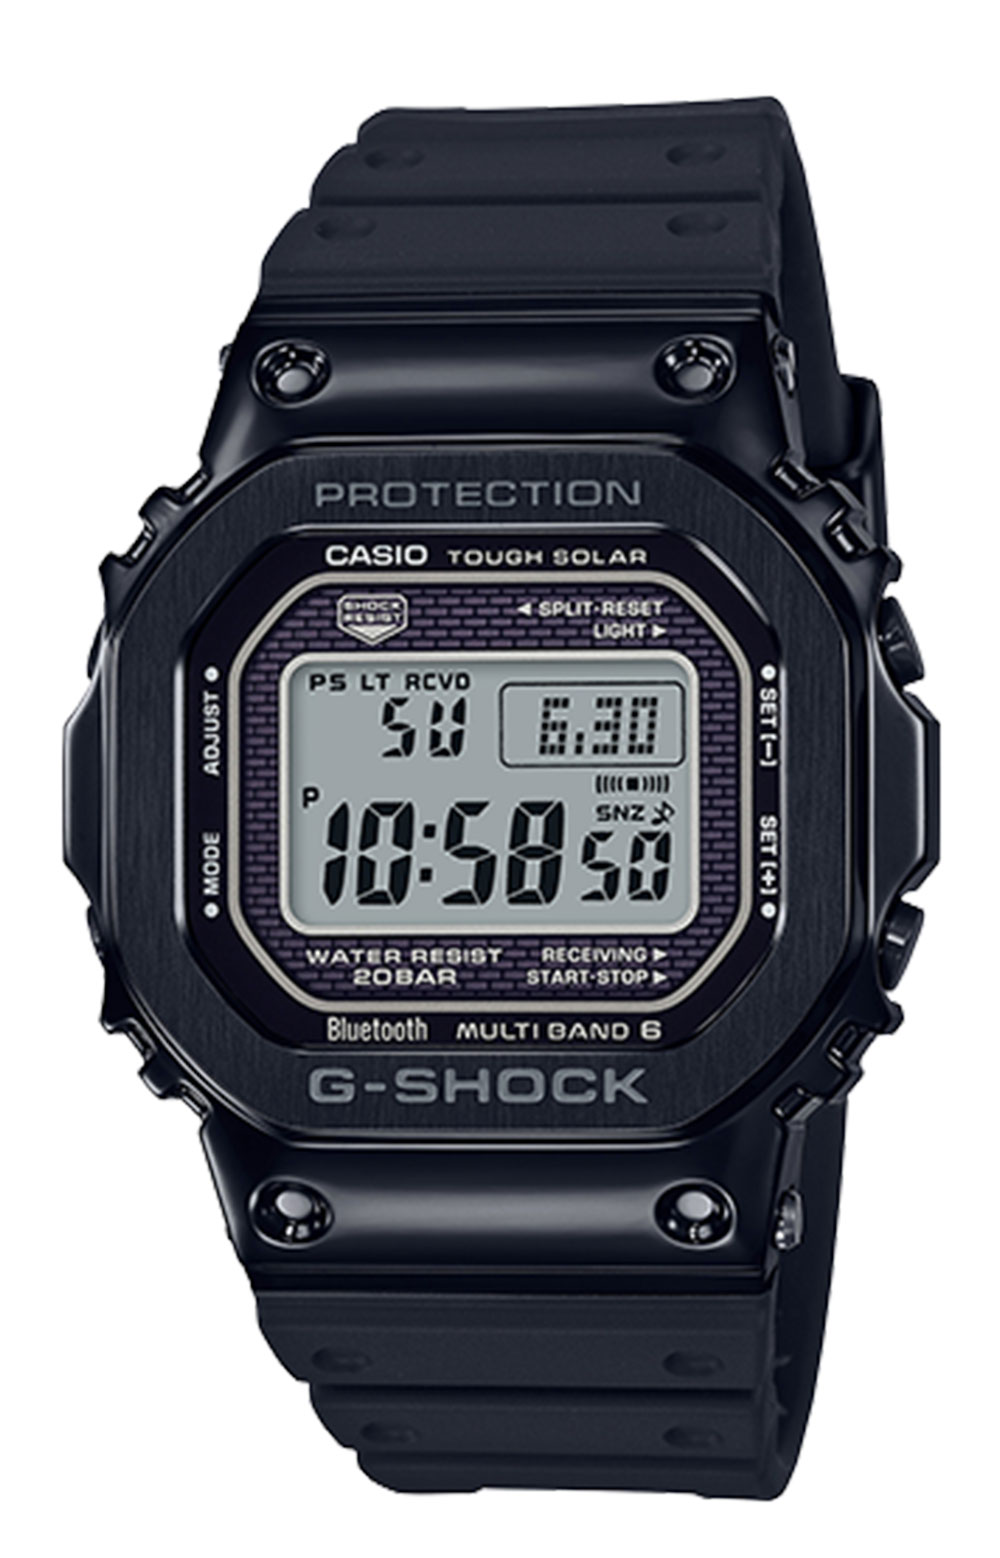 GMWB5000G-1 Watch - Black